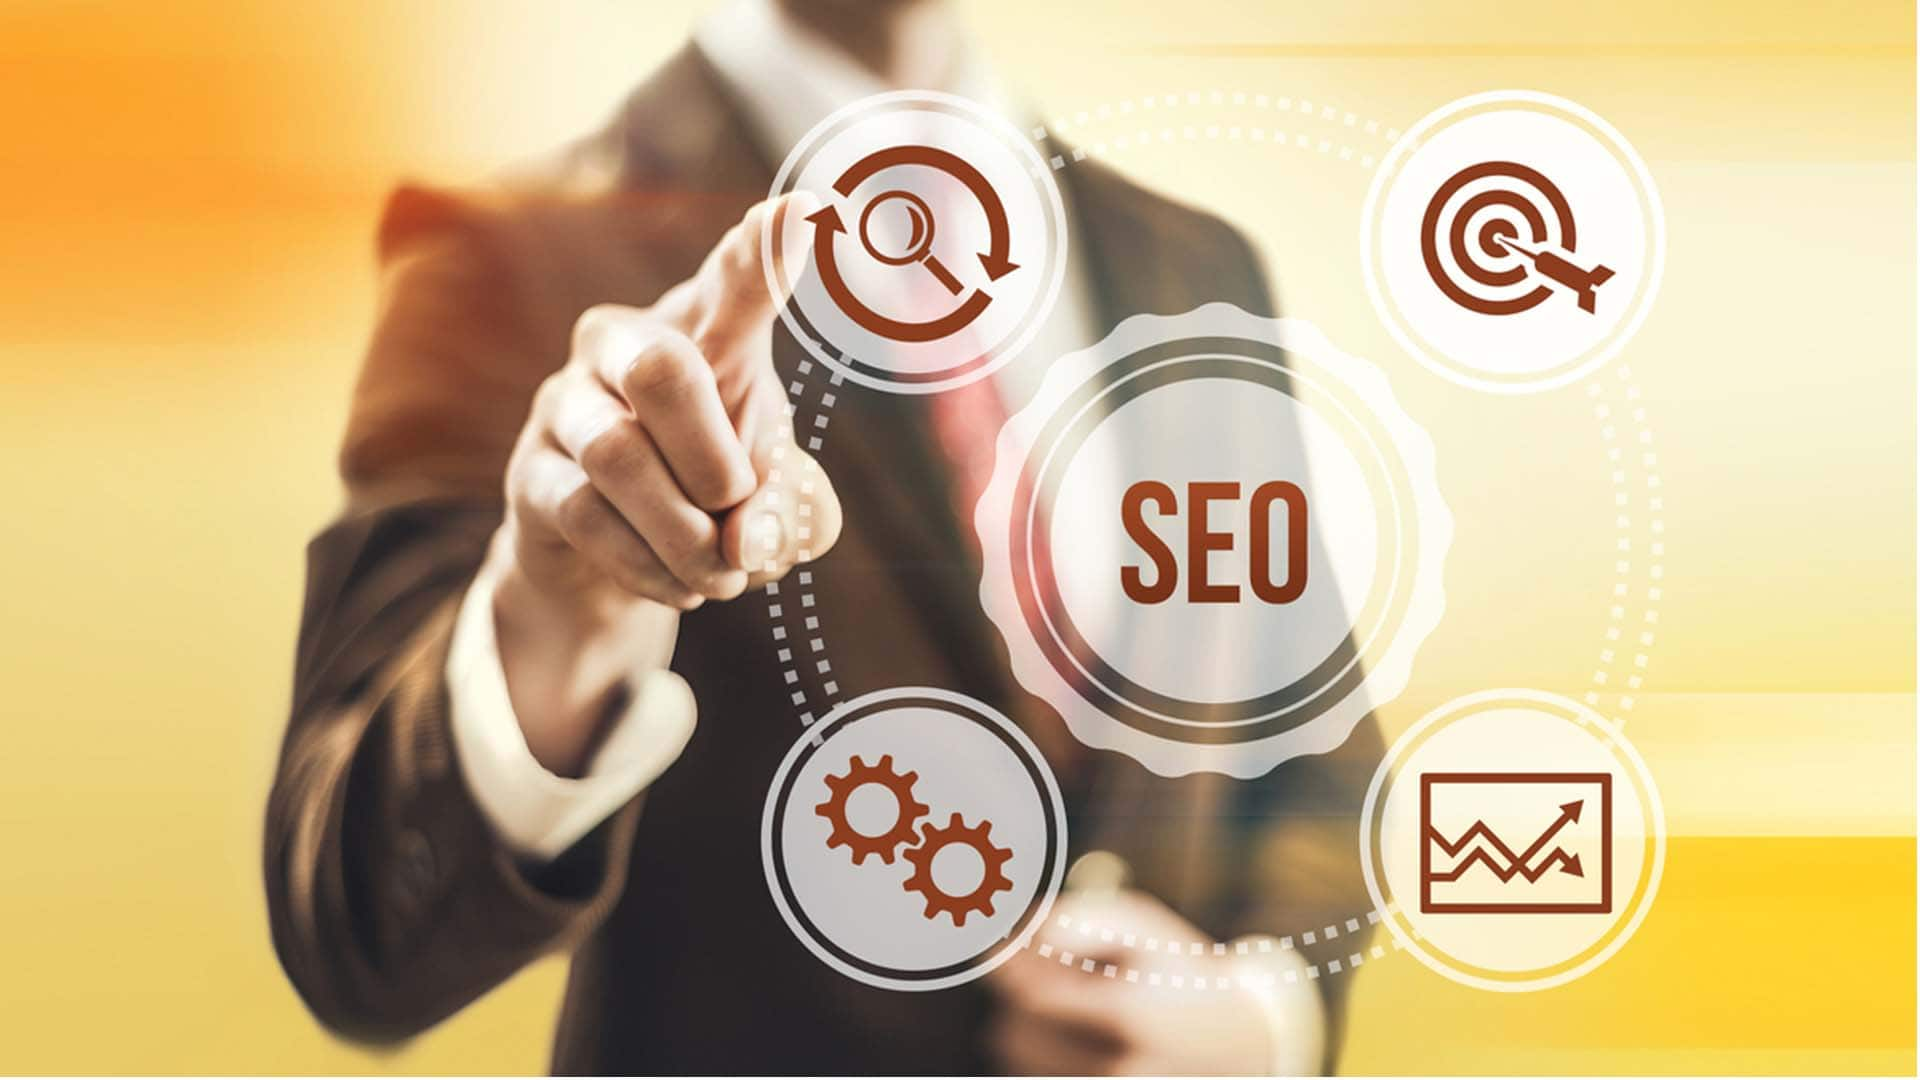 9 Best SEO Tools for Auditing and Enhancing Website Performance in 2019